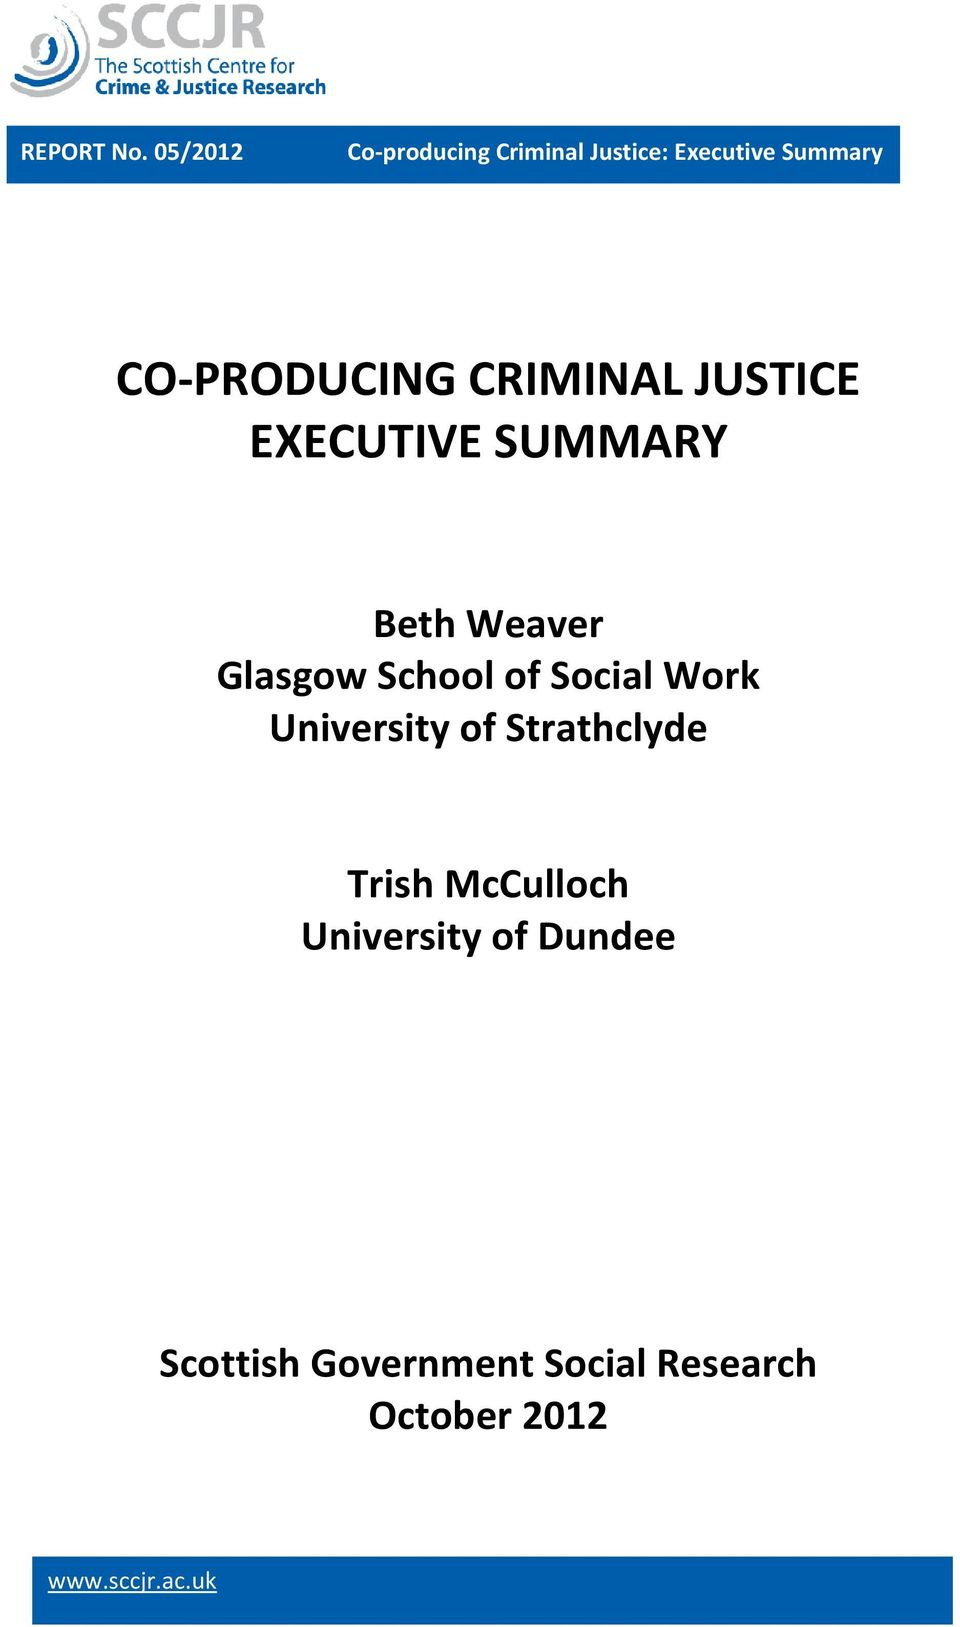 Beth Weaver Glasgow School of Social Work University of